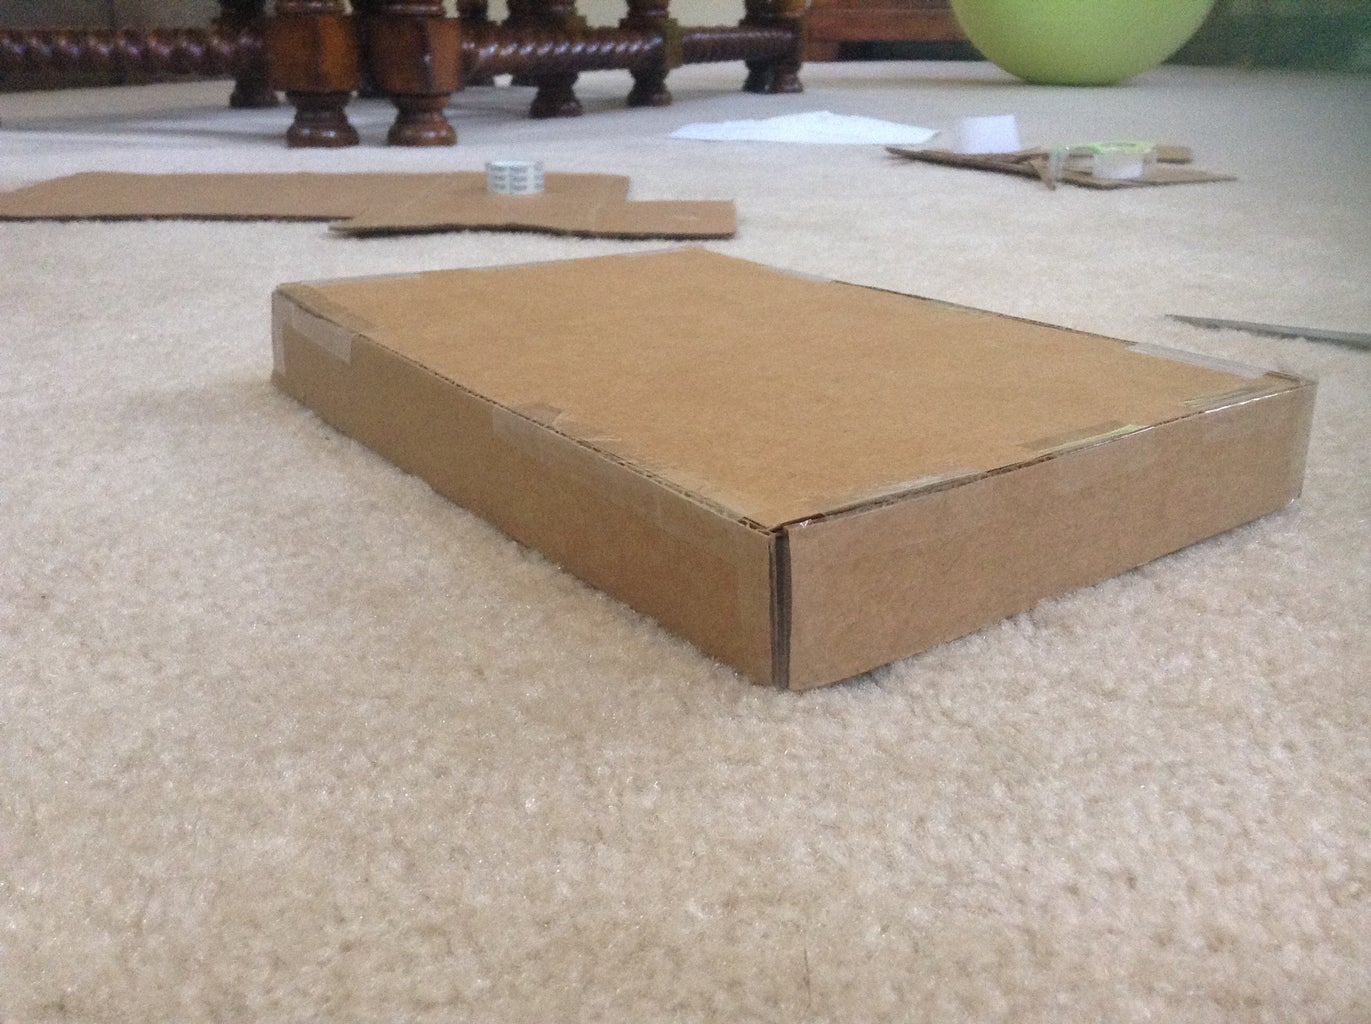 Construct the Poster Box